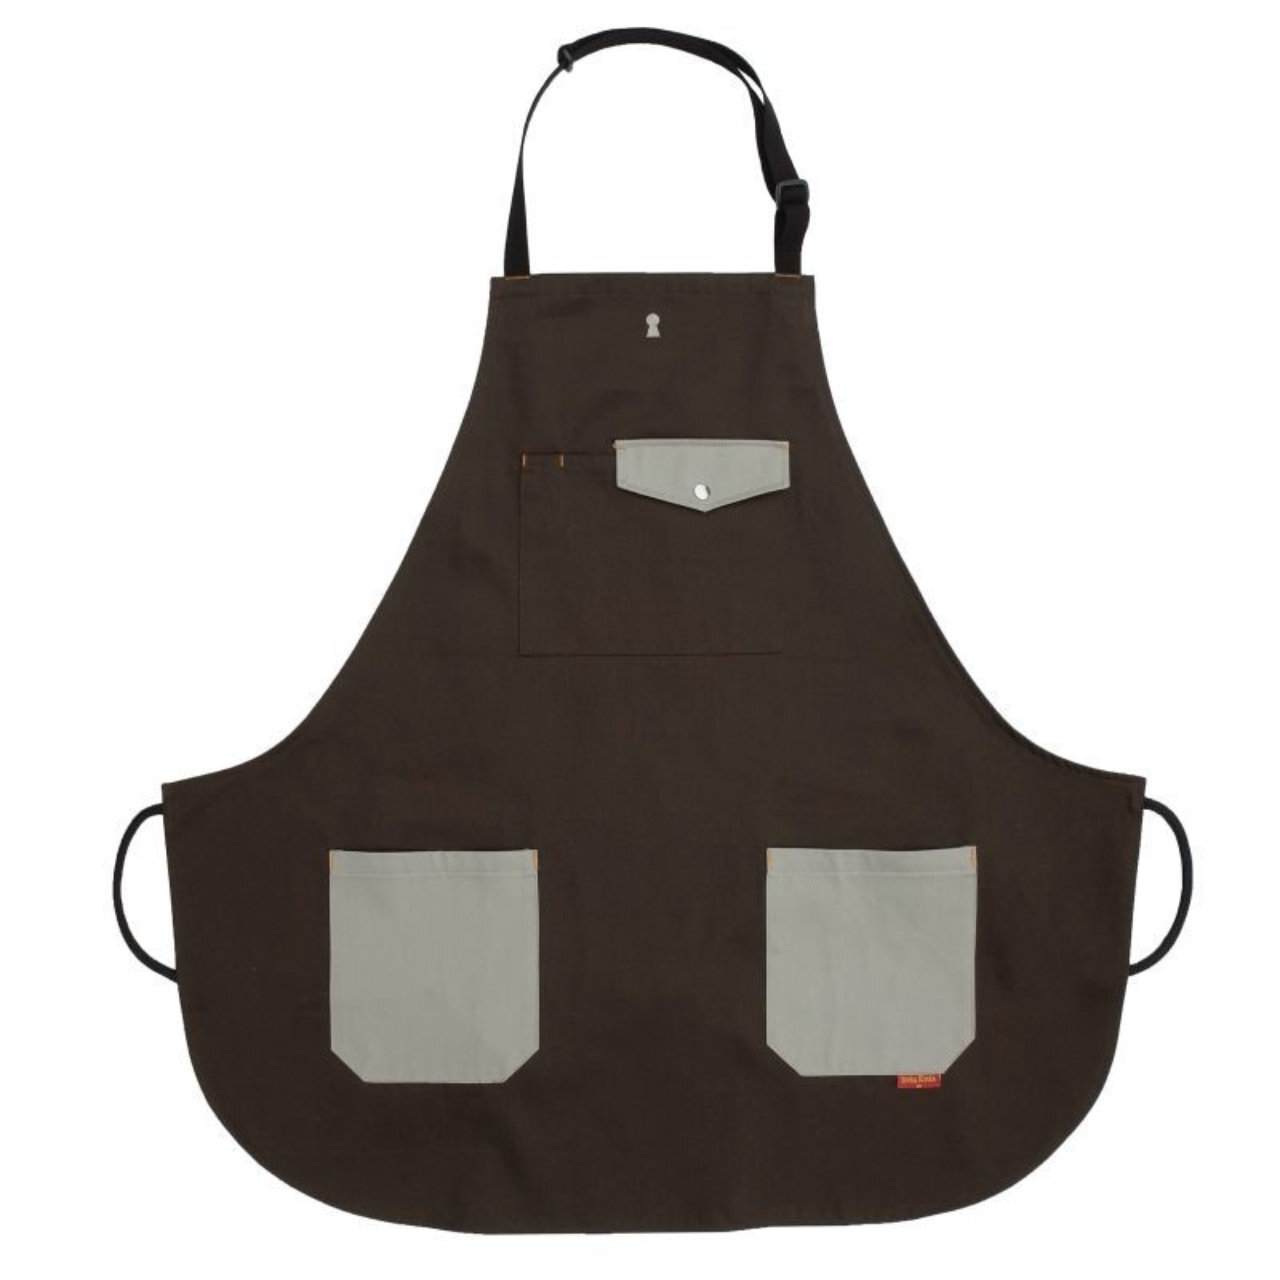 Original John | KINKY WORK APRON - Brown [JK386]